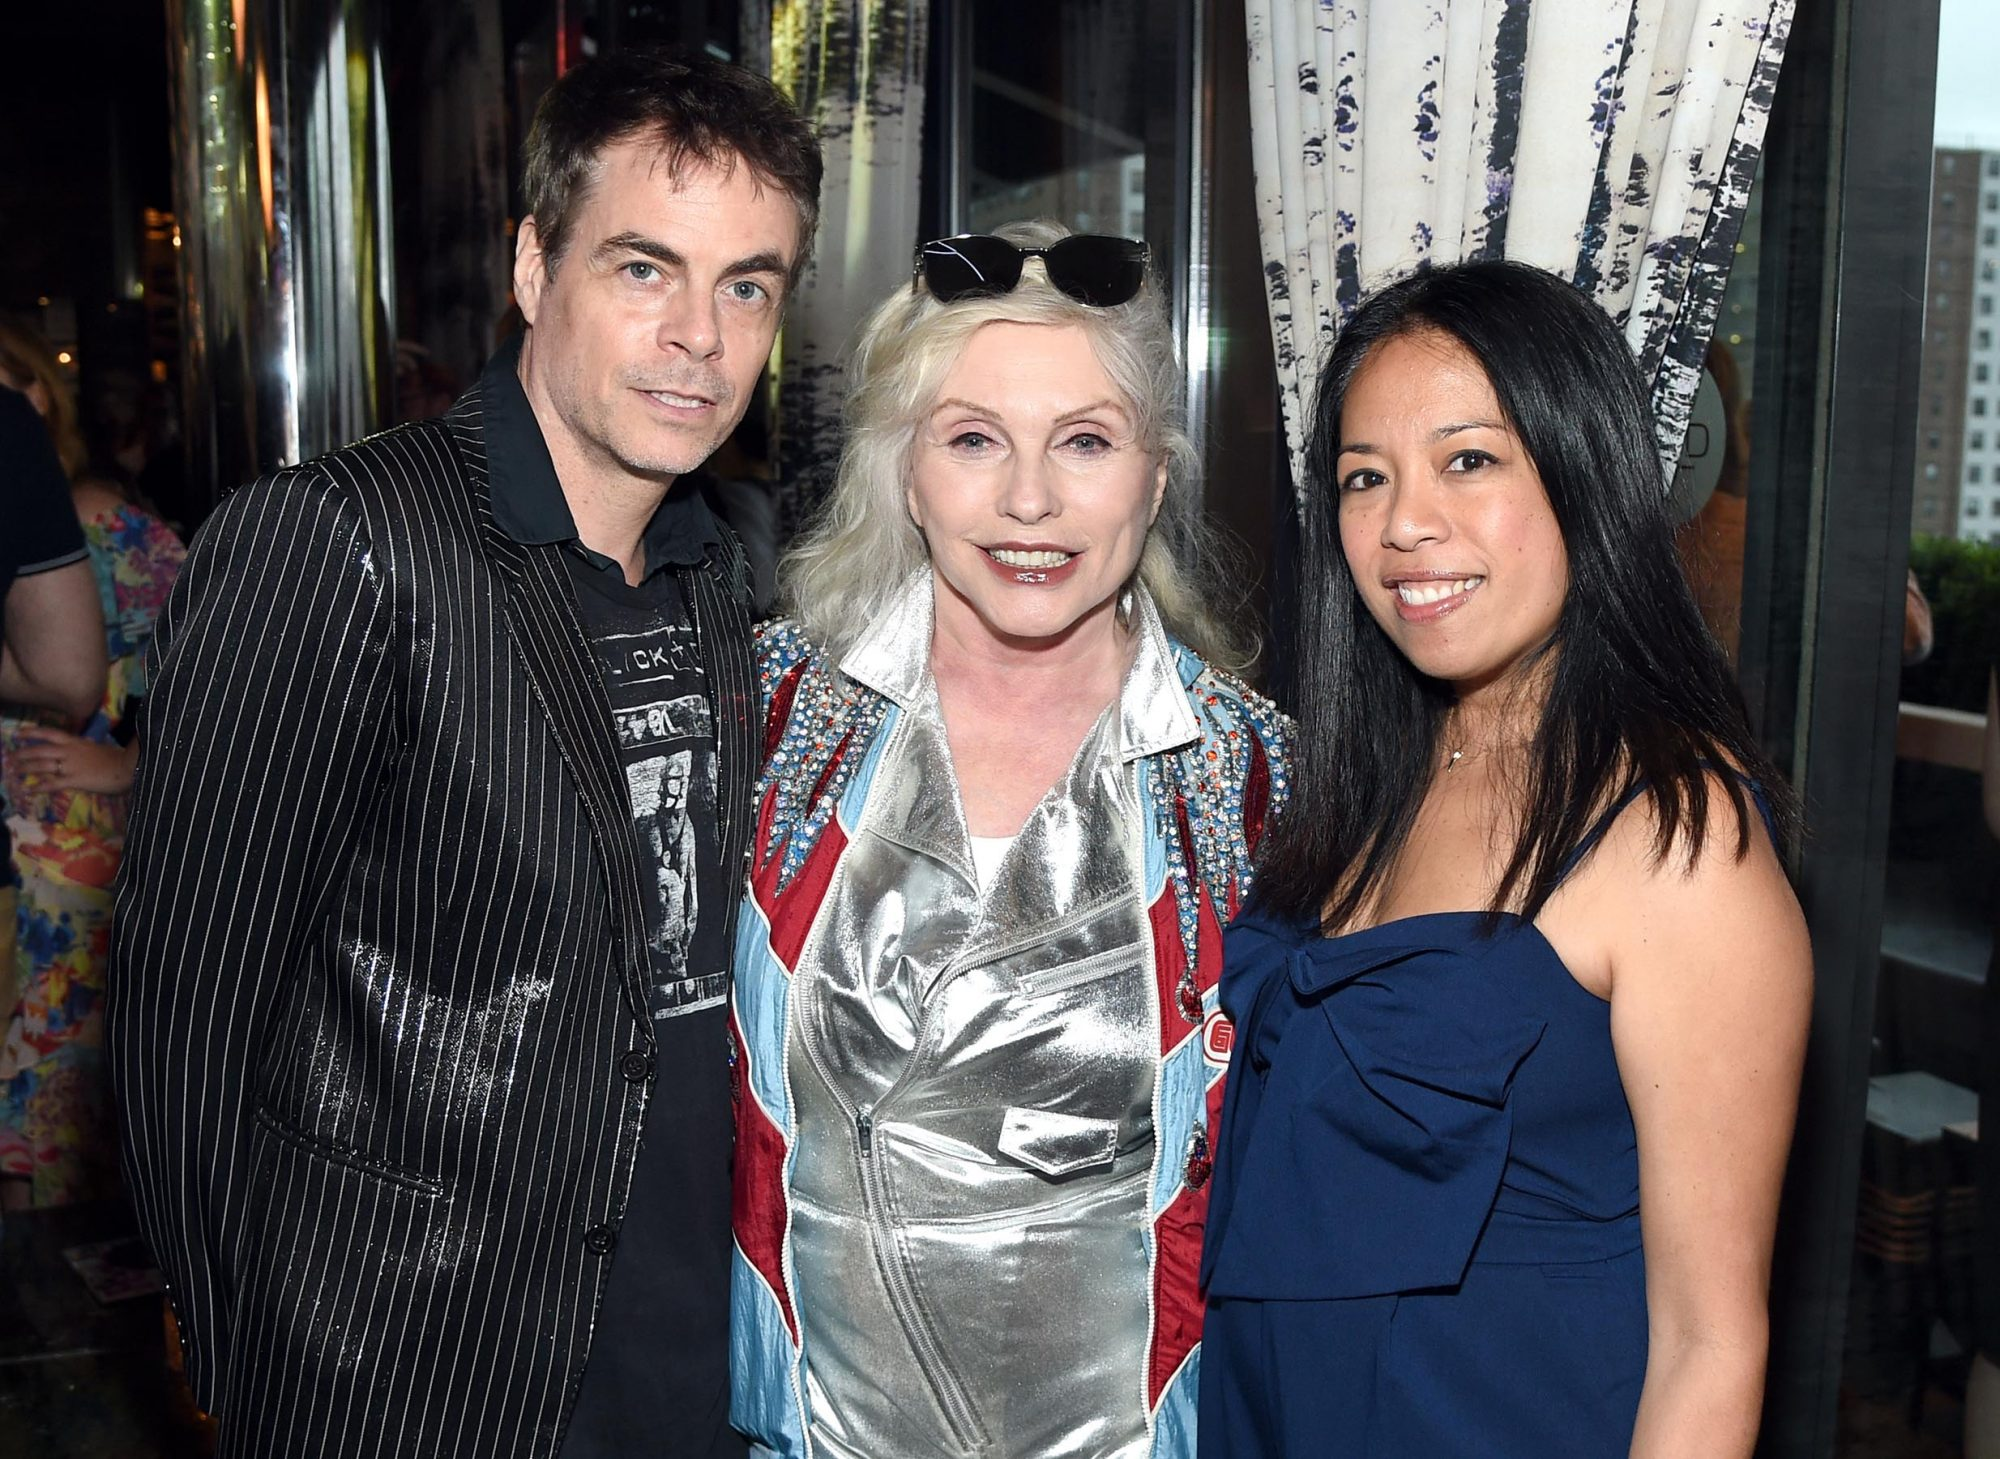 Artist Rob Roth, Musician Debbie Harry and Entertainment Weekly Features Editor Clarissa Cruz